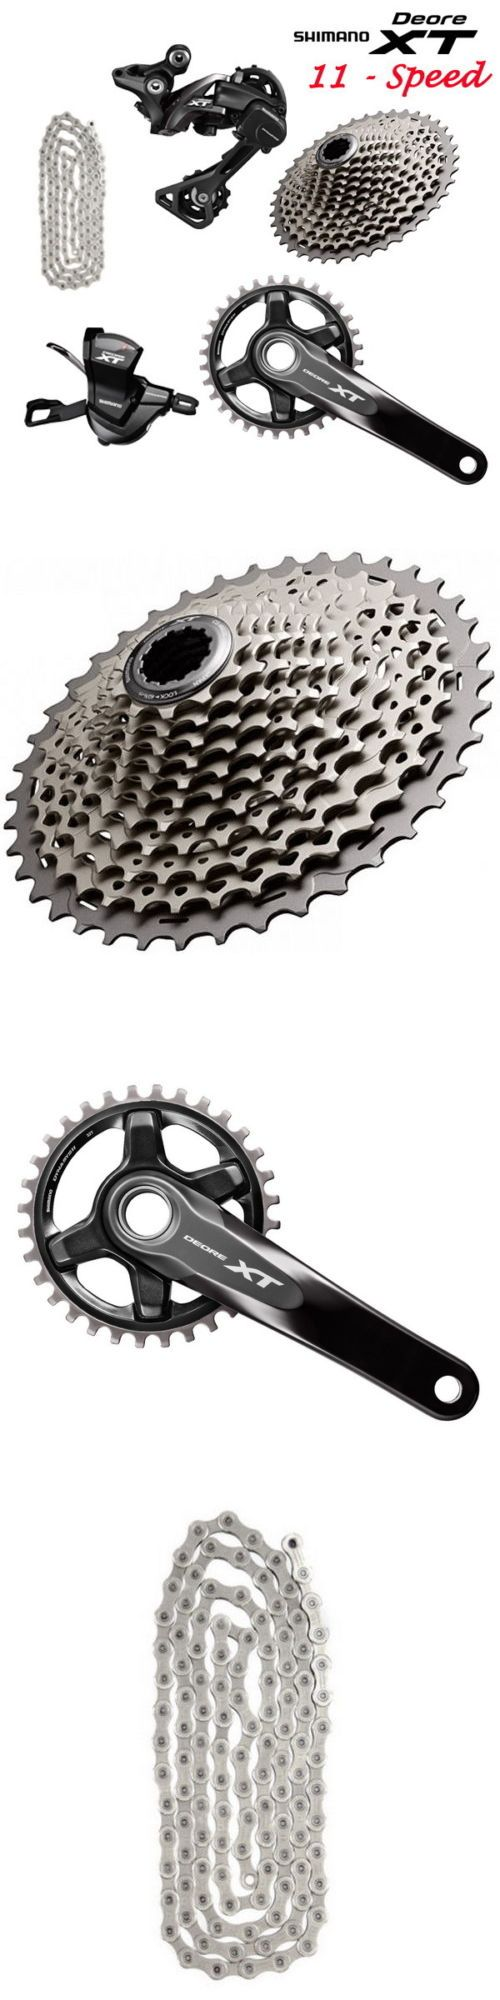 Build Kits and Gruppos 109120: 2016 Shimano Deore Xt M8000 11-Speed Groupset Drivetrain Group Set 175 170Mm -> BUY IT NOW ONLY: $367.99 on eBay!